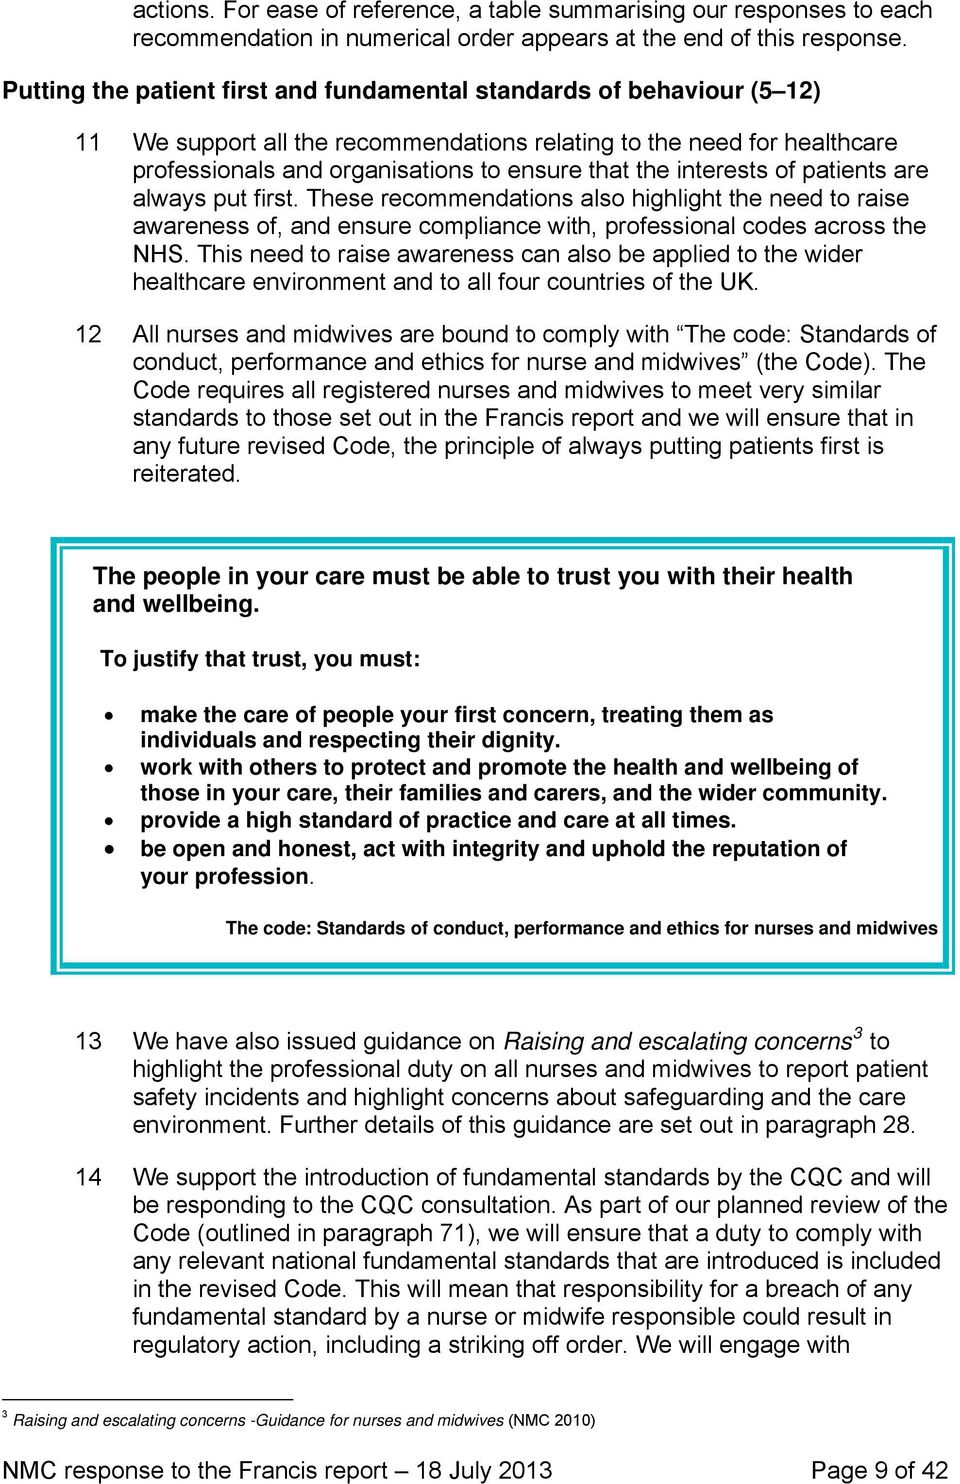 interests of patients are always put first. These recommendations also highlight the need to raise awareness of, and ensure compliance with, professional codes across the NHS.